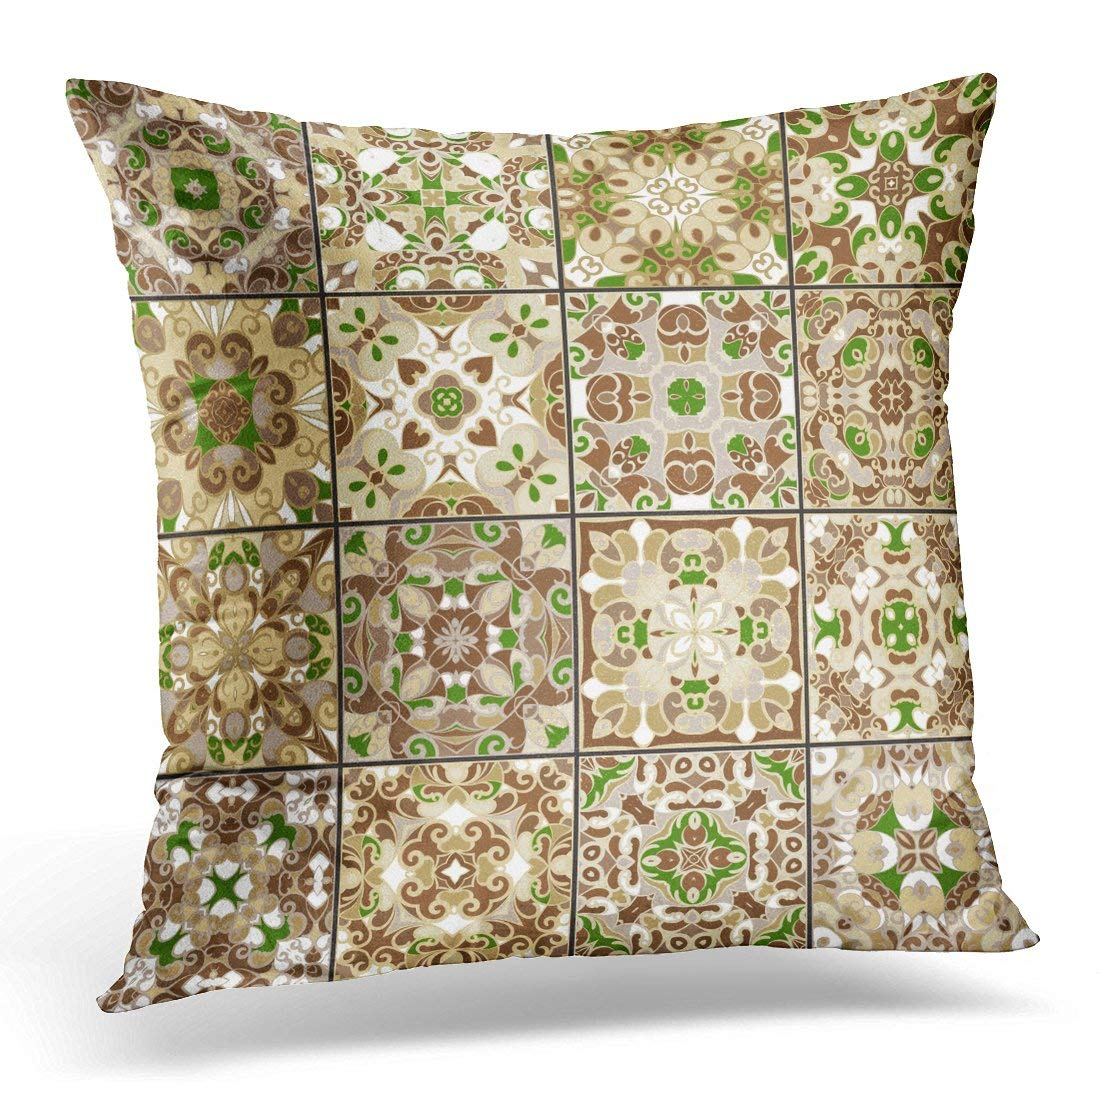 USART Brown Ancient Collection of Ceramic Tiles in Green Gold Colors Patterns Oriental Style Colorful Antique Pillow Cover 16x16 Inches Throw Pillow Case Cushion Cover